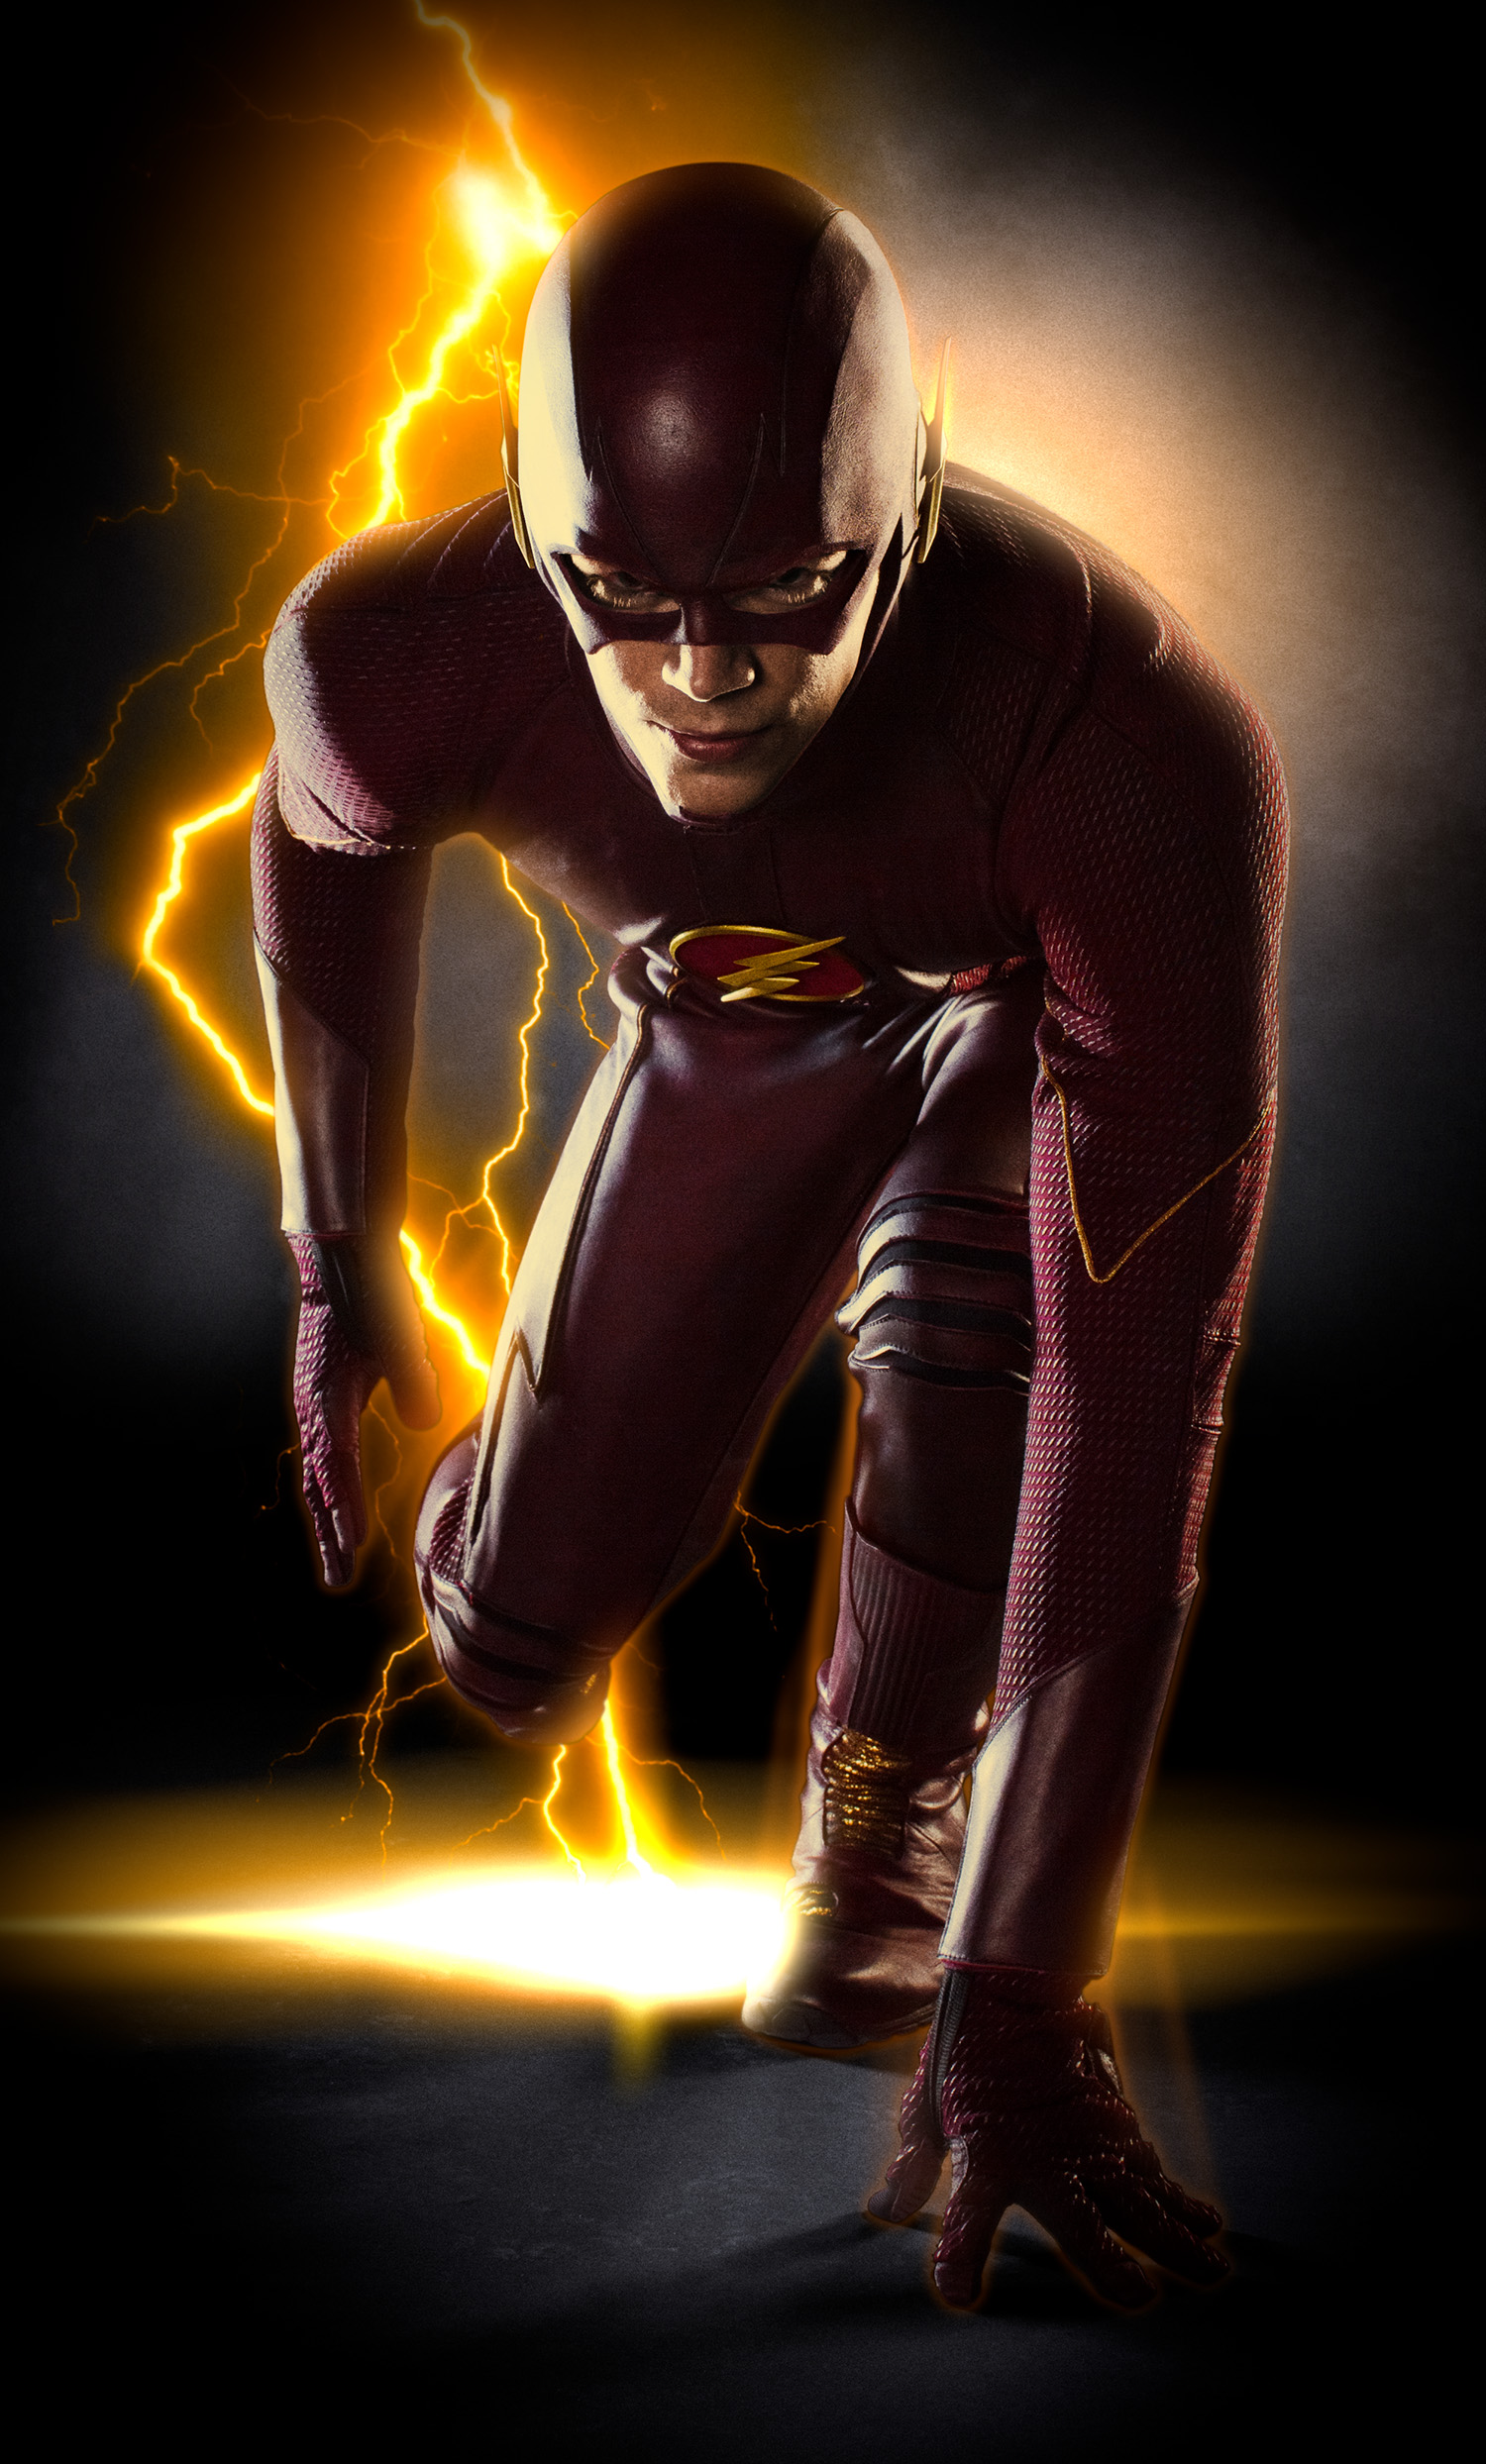 THE FLASH Full Suit Image 570x945 The Flash TV Series Official Costume 1500x2488